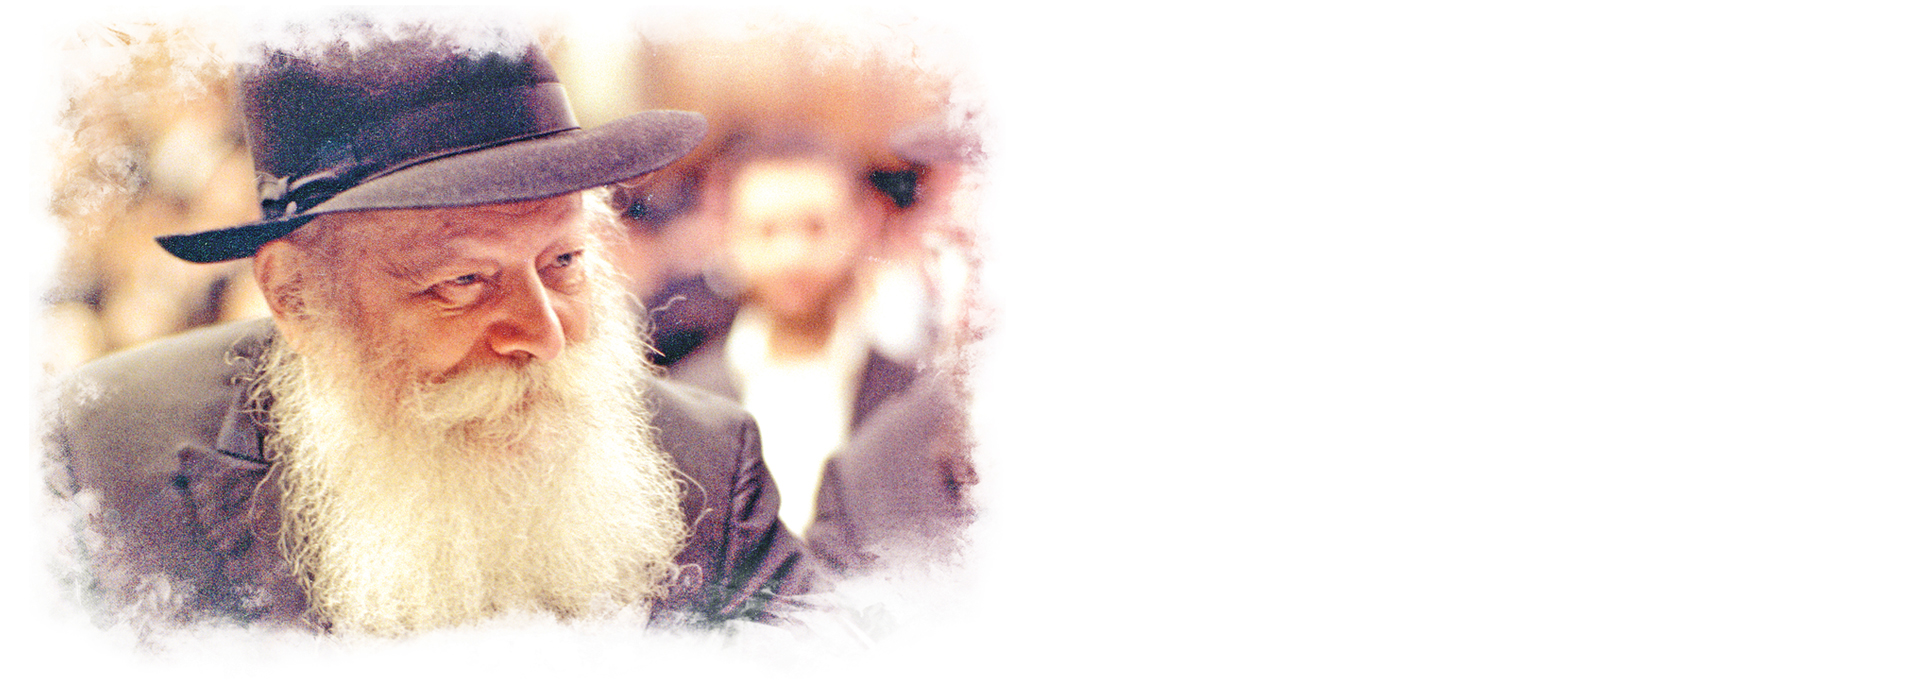 Header_Rabbi-3v3